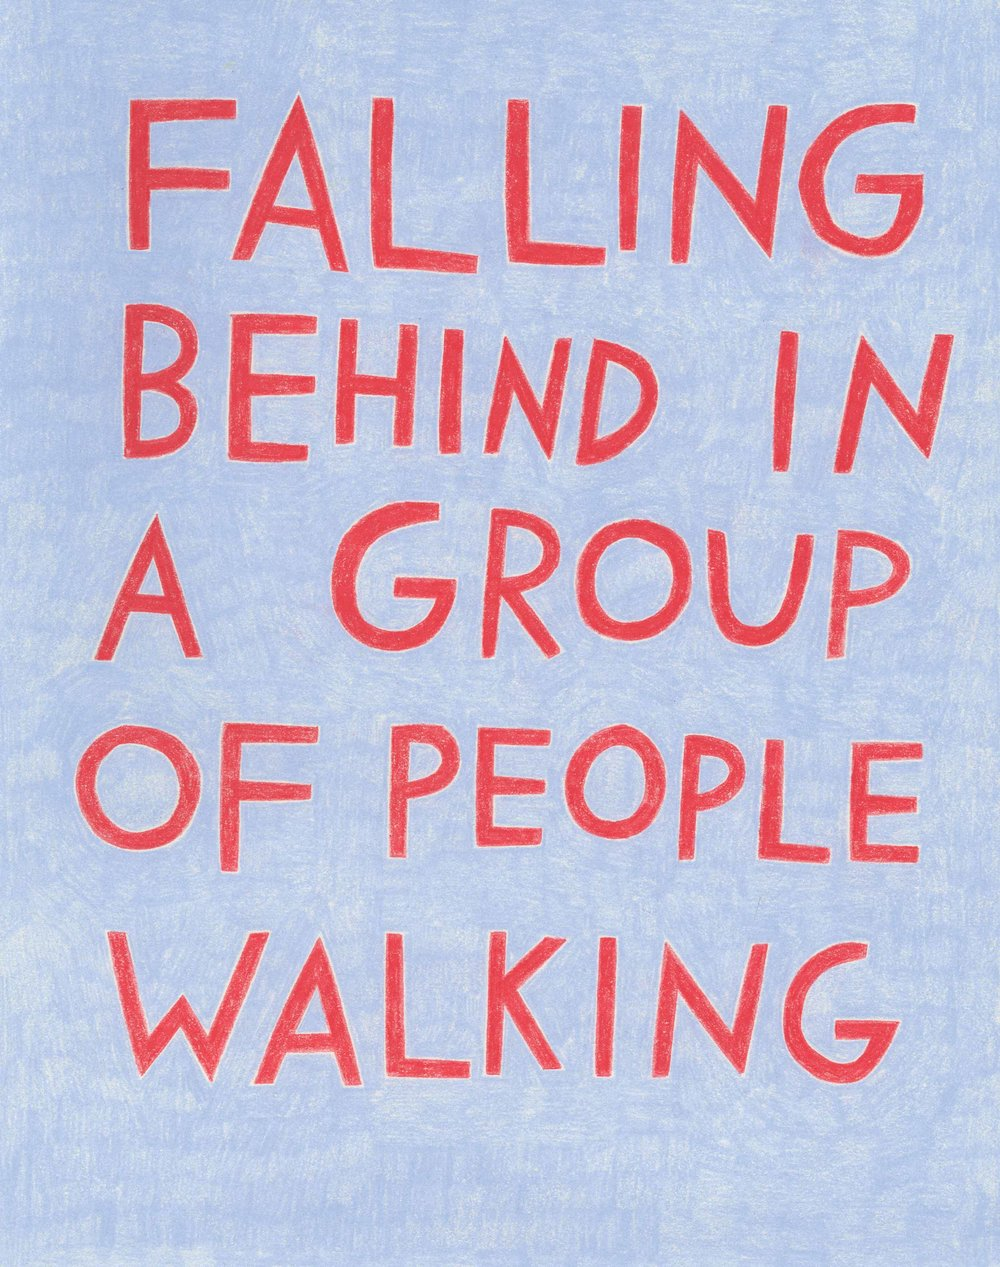 """""""Falling behind in a group of people walking,"""" in bright red on light blue."""